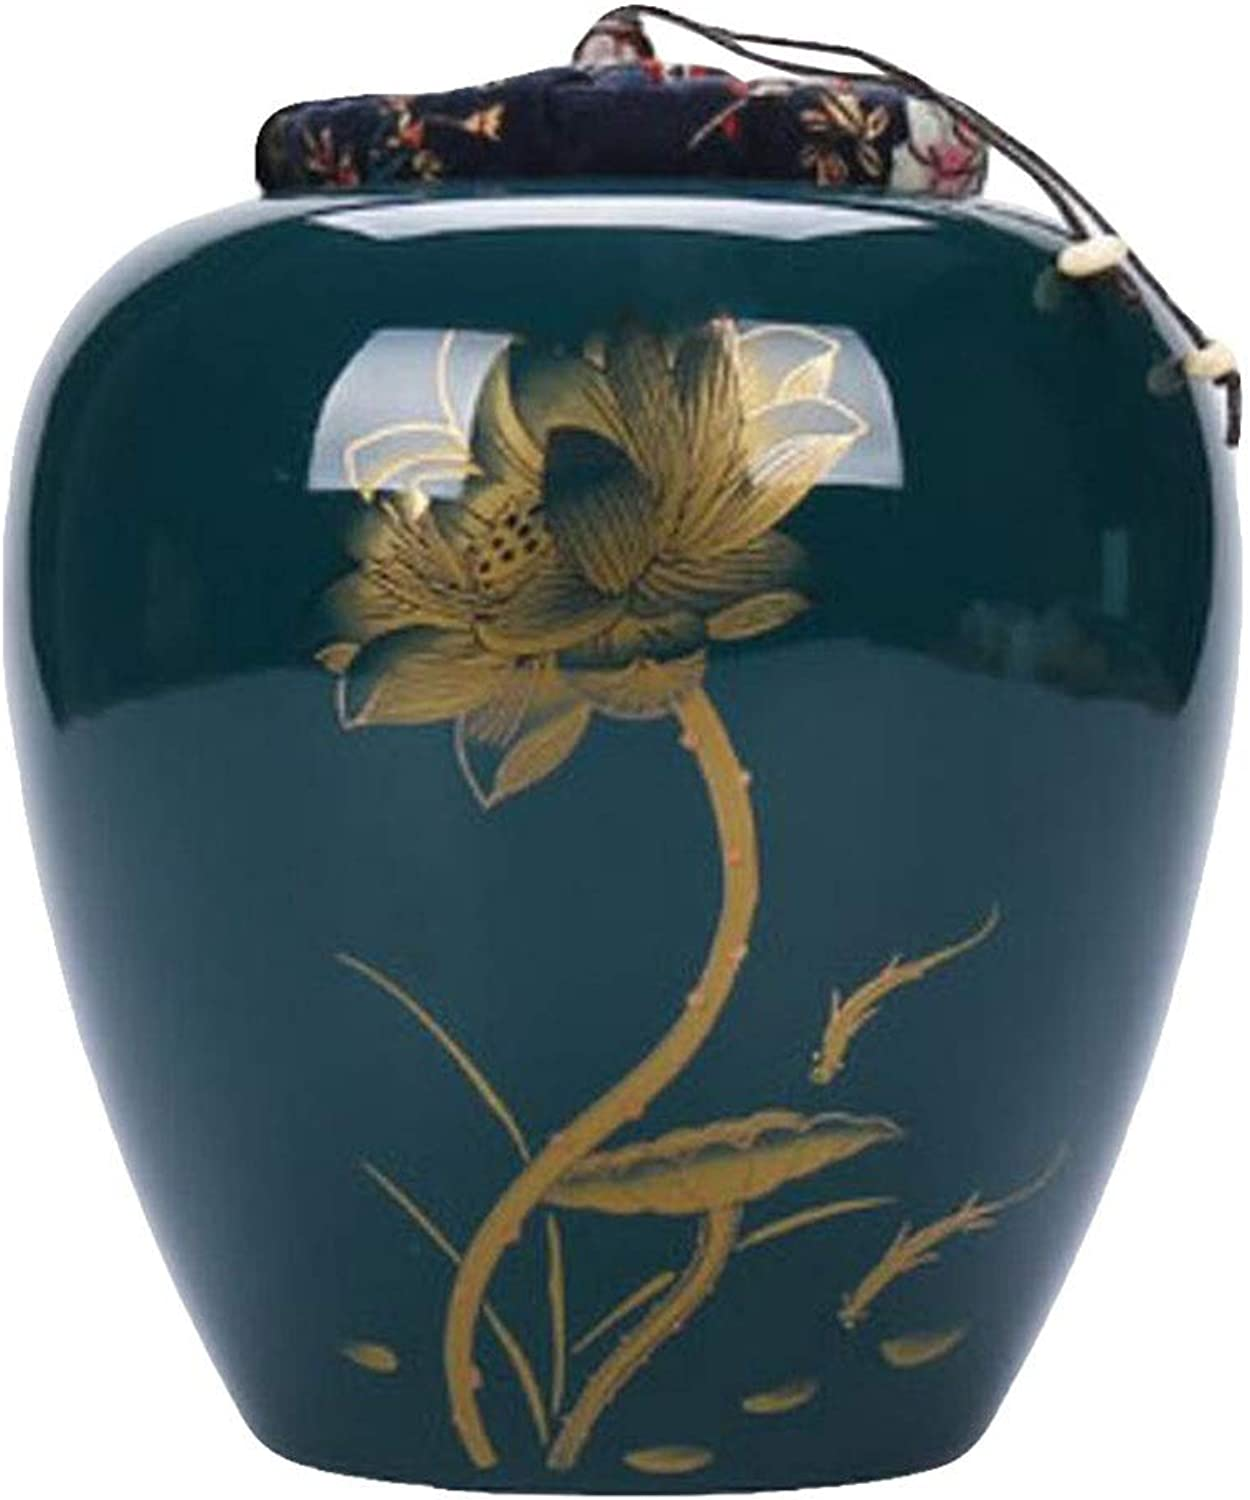 Awesome Ldfn Memorial Hall Pet Urns Ashes Cinerary Casket Ceramics Download Free Architecture Designs Rallybritishbridgeorg